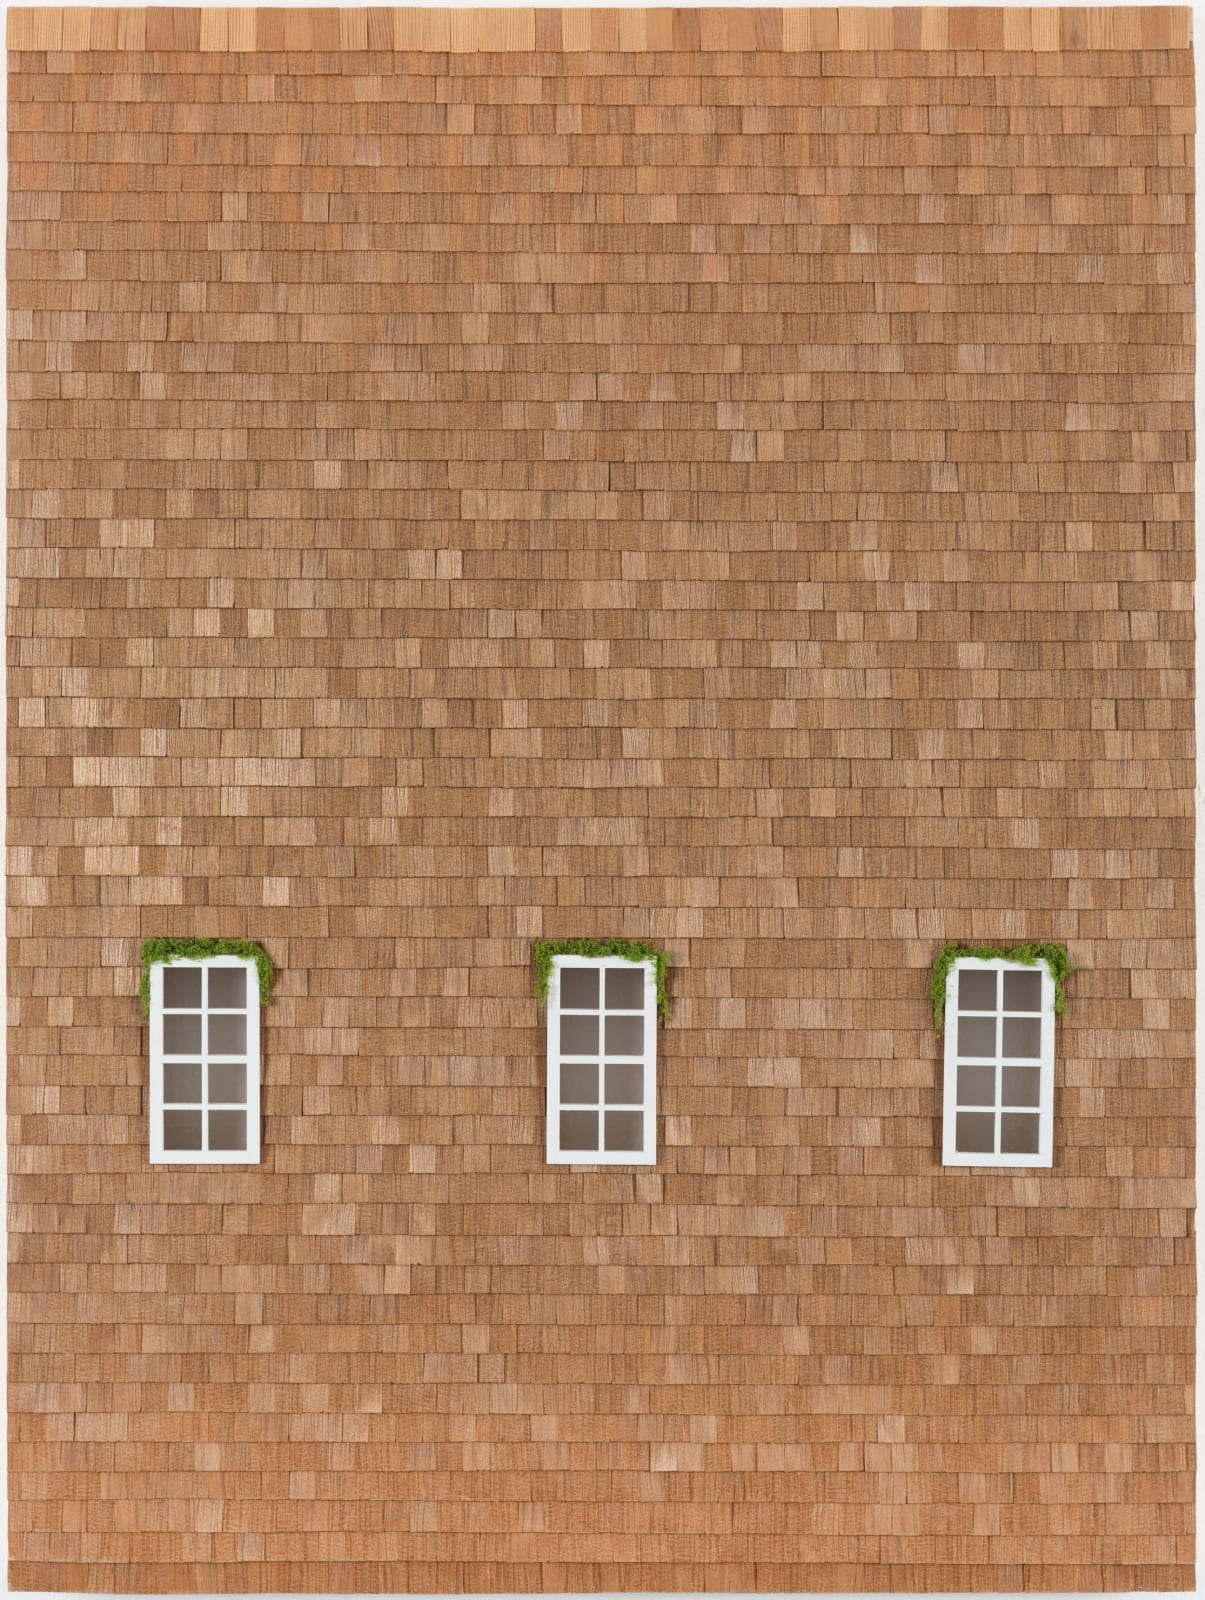 Adia Millett, Three Windows, 2015